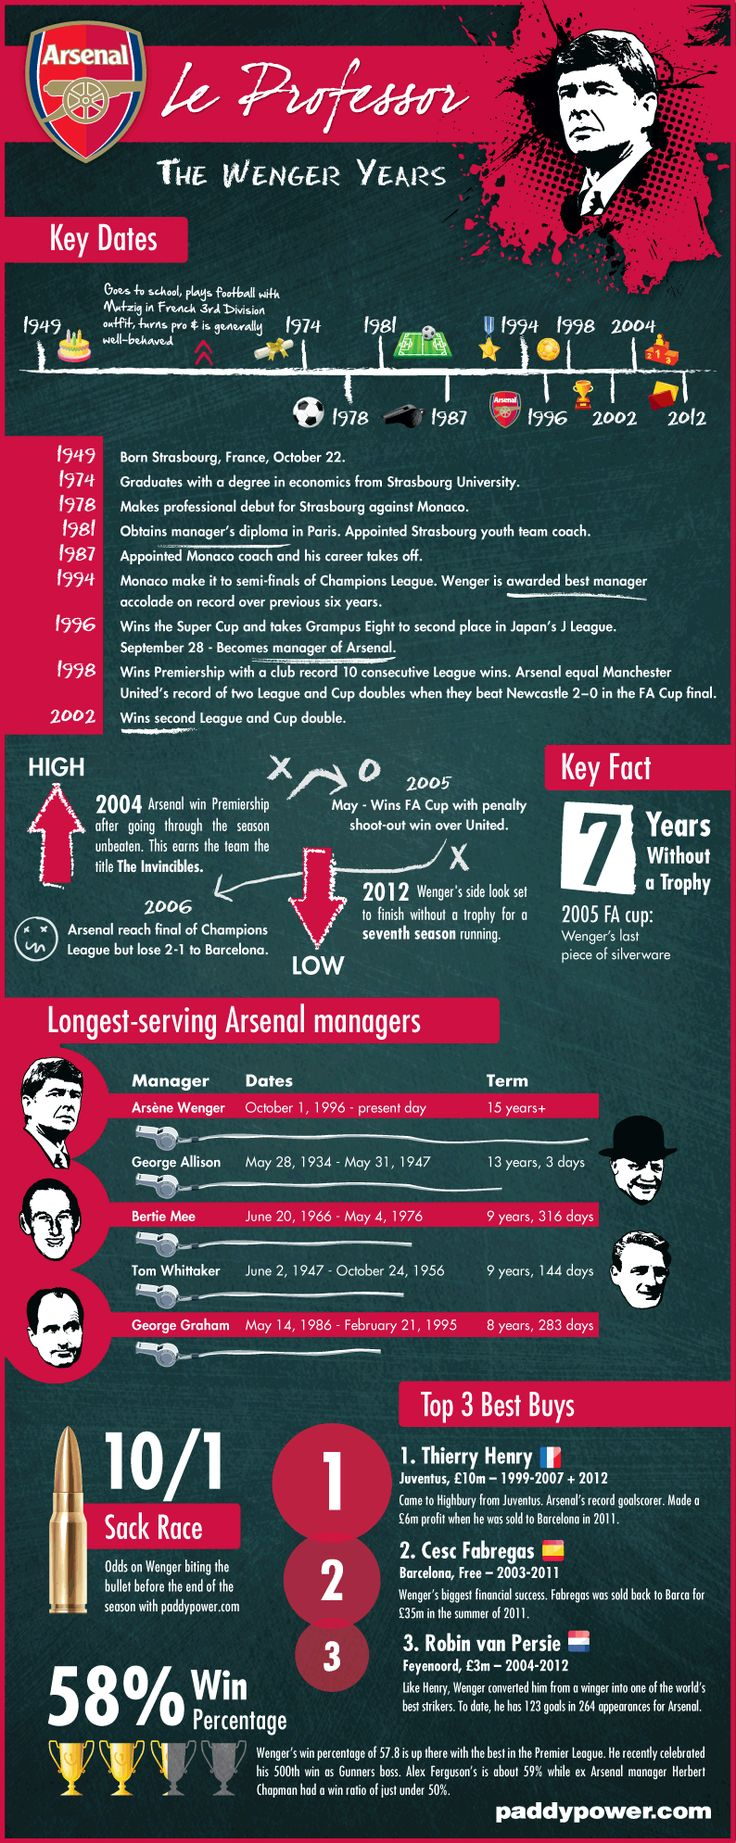 A Look At Arsene Wenger's Arsenal Career